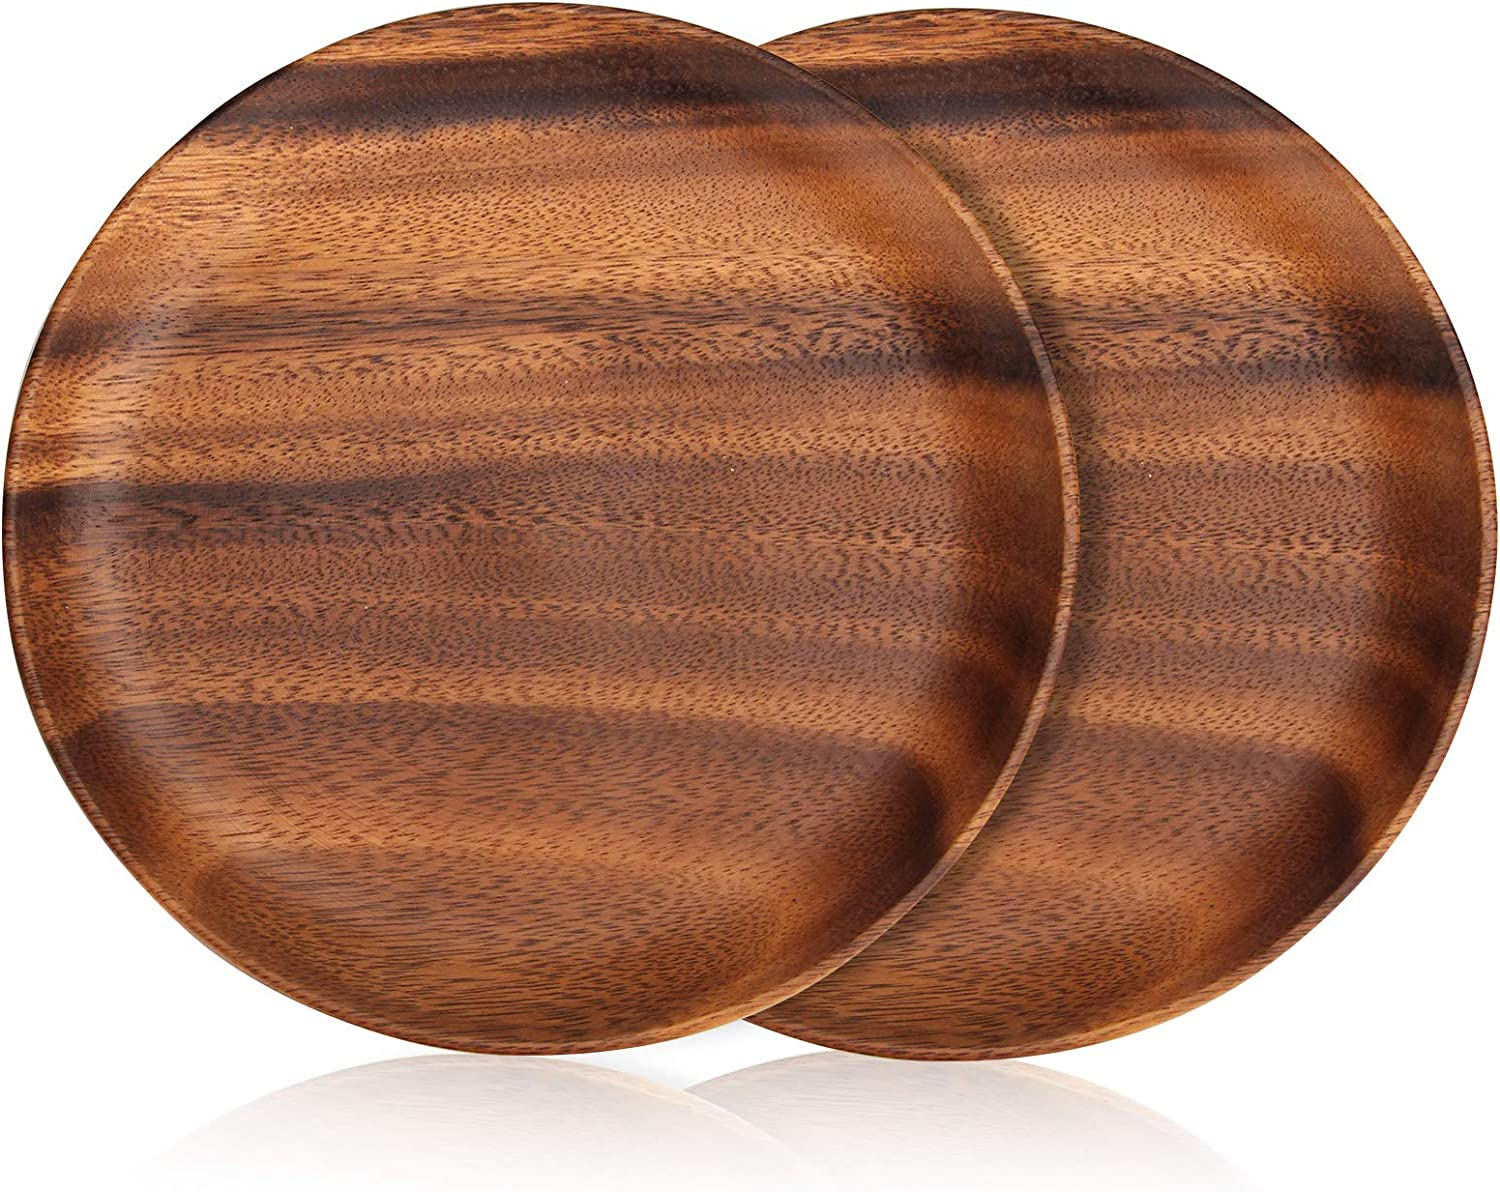 Set of 2 Luxury Acacia Wood Round Dinner Plates 10 Inch, Sandwich Cookie Wooden Serving Platter for Food Dessert Salad Plate Small Fruit Tray